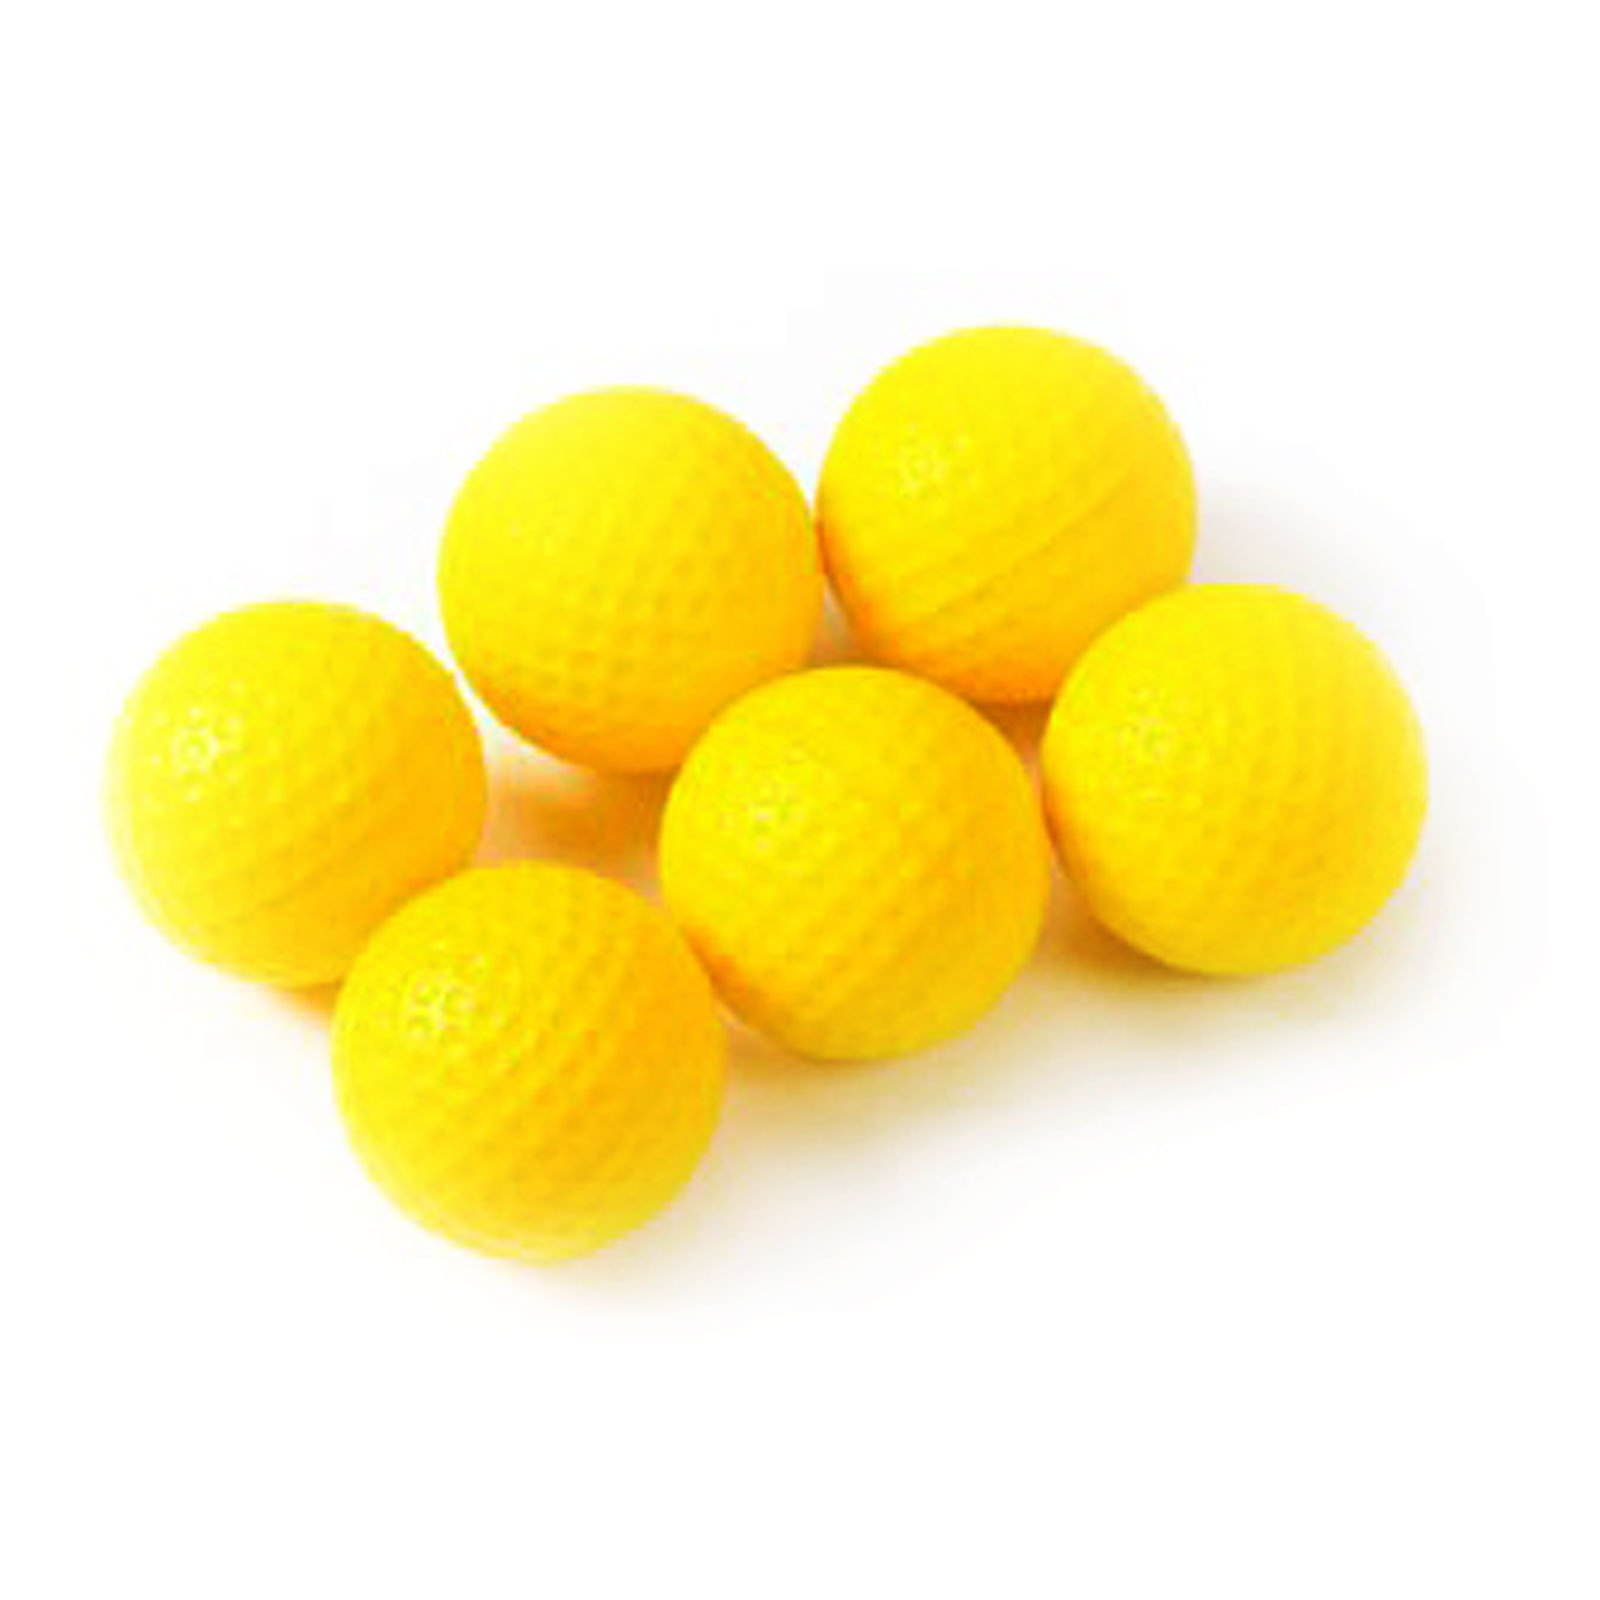 Tour Gear PU Foam Practice Golf Balls (6-Pack) by Tour Gear (Image #1)